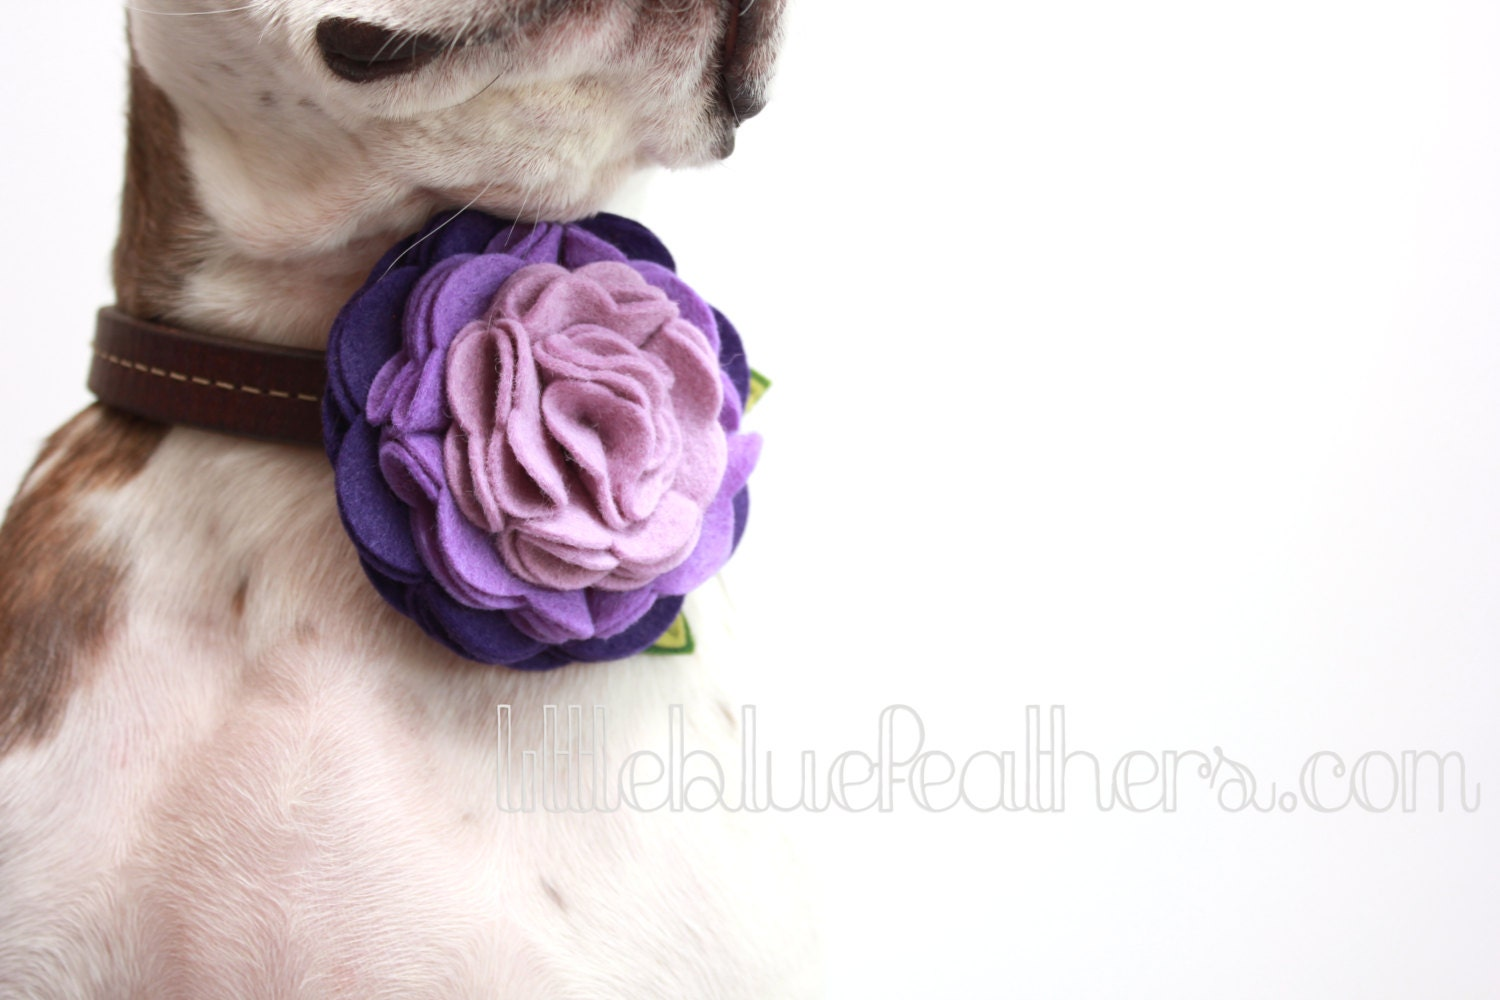 Ombre Rosette Felt Flower Dog Accessories By